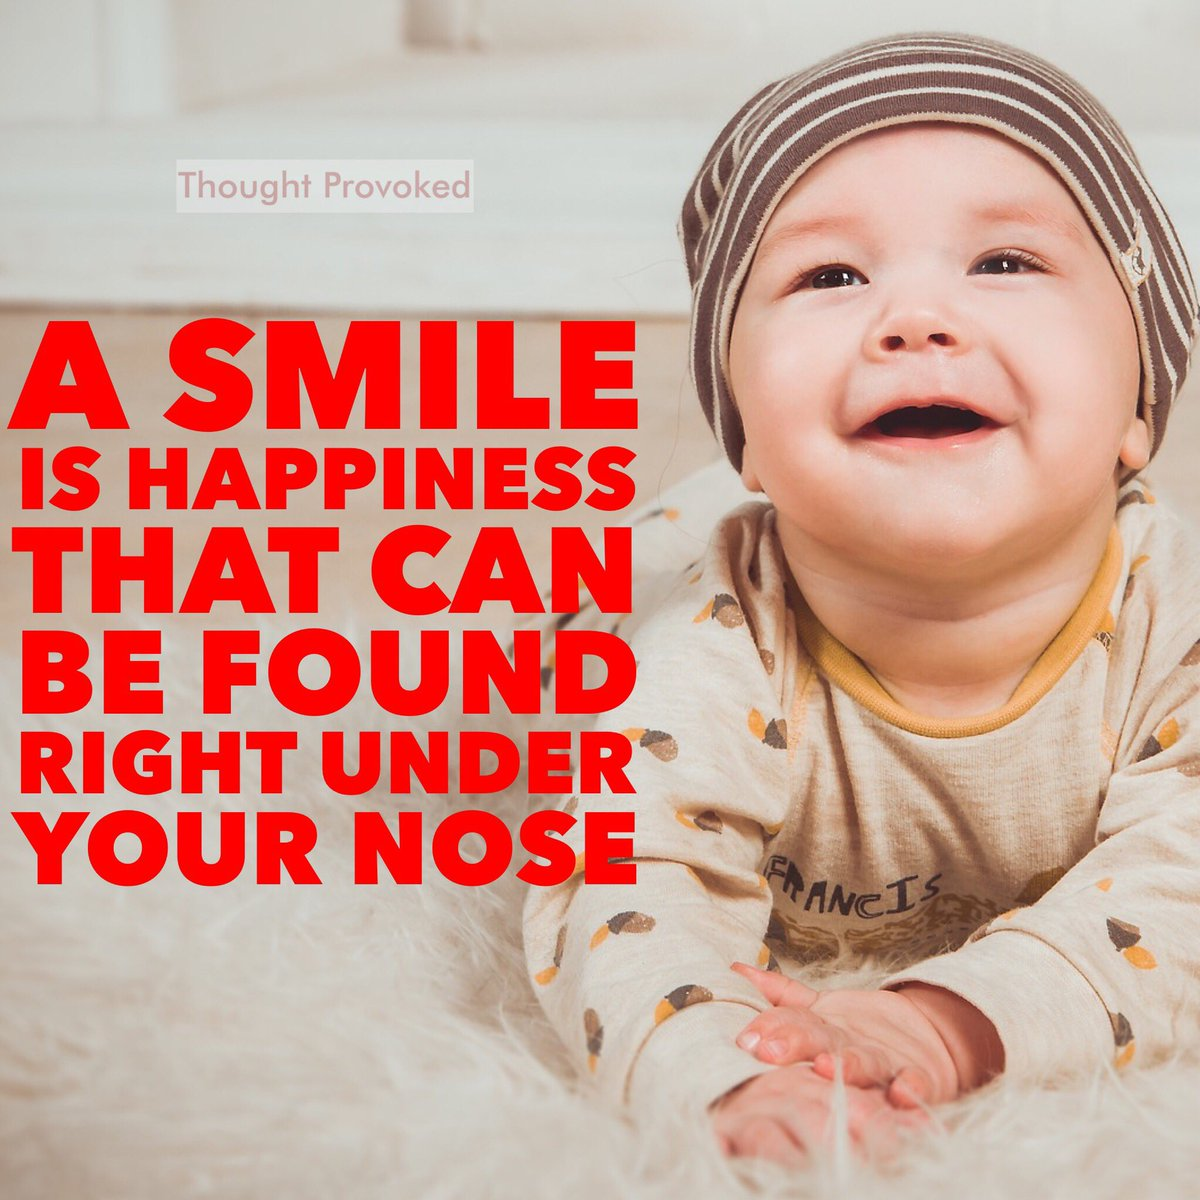 A smile is happiness that can be found right under your nose  #FridayThoughts #JoyTrain #IQRTG #FridayMorning #Motivation #QOTD #Friyay<br>http://pic.twitter.com/CgpOwWVCpb